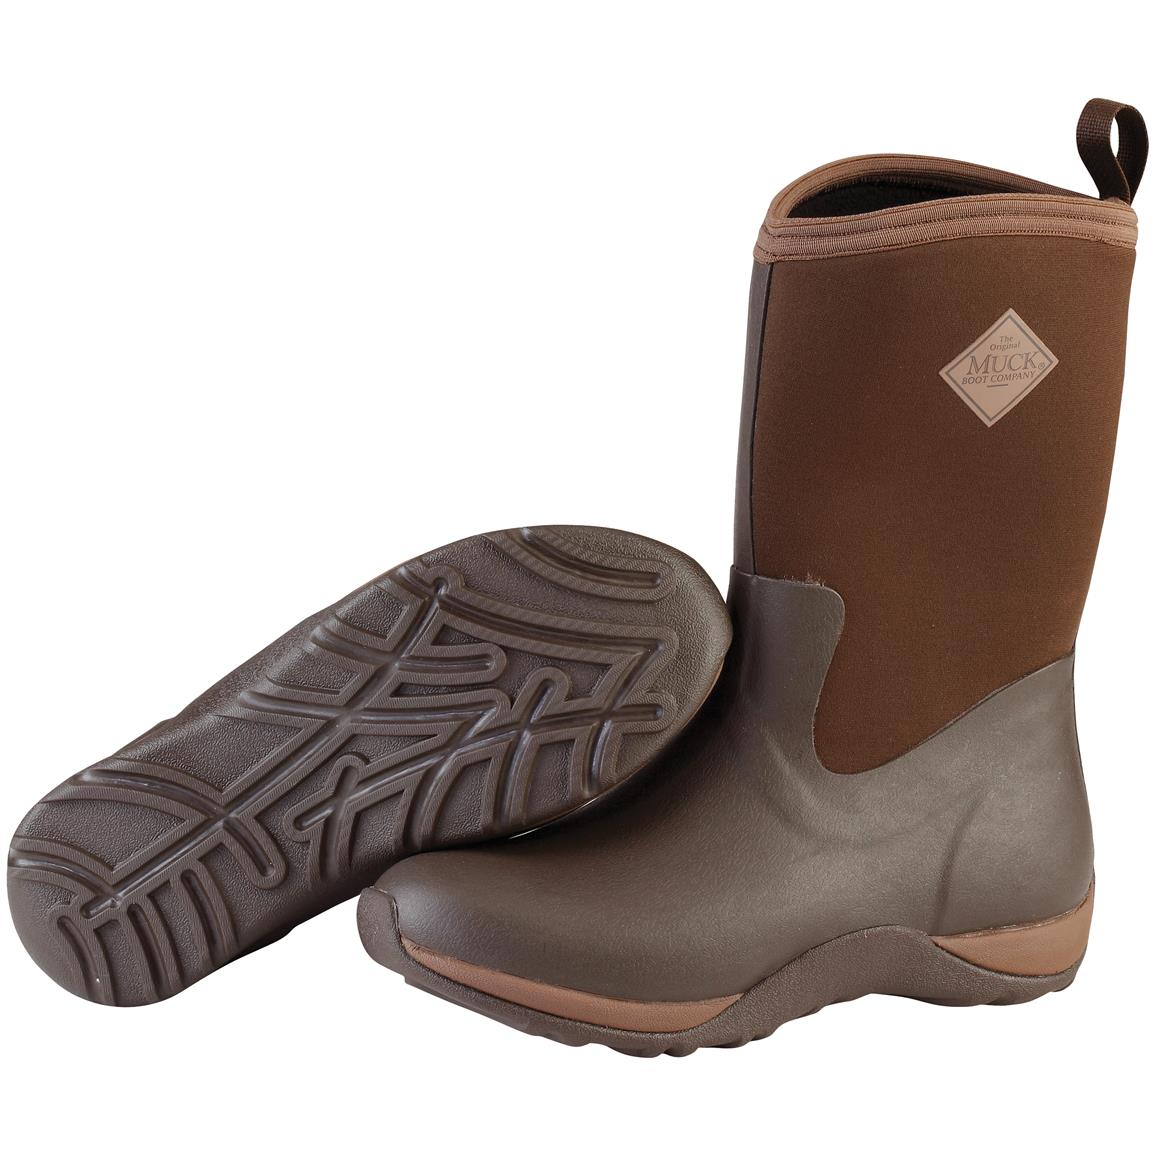 Excellent Womens Woody Max Hunting Chore Boots Muck Boot Company   Womens